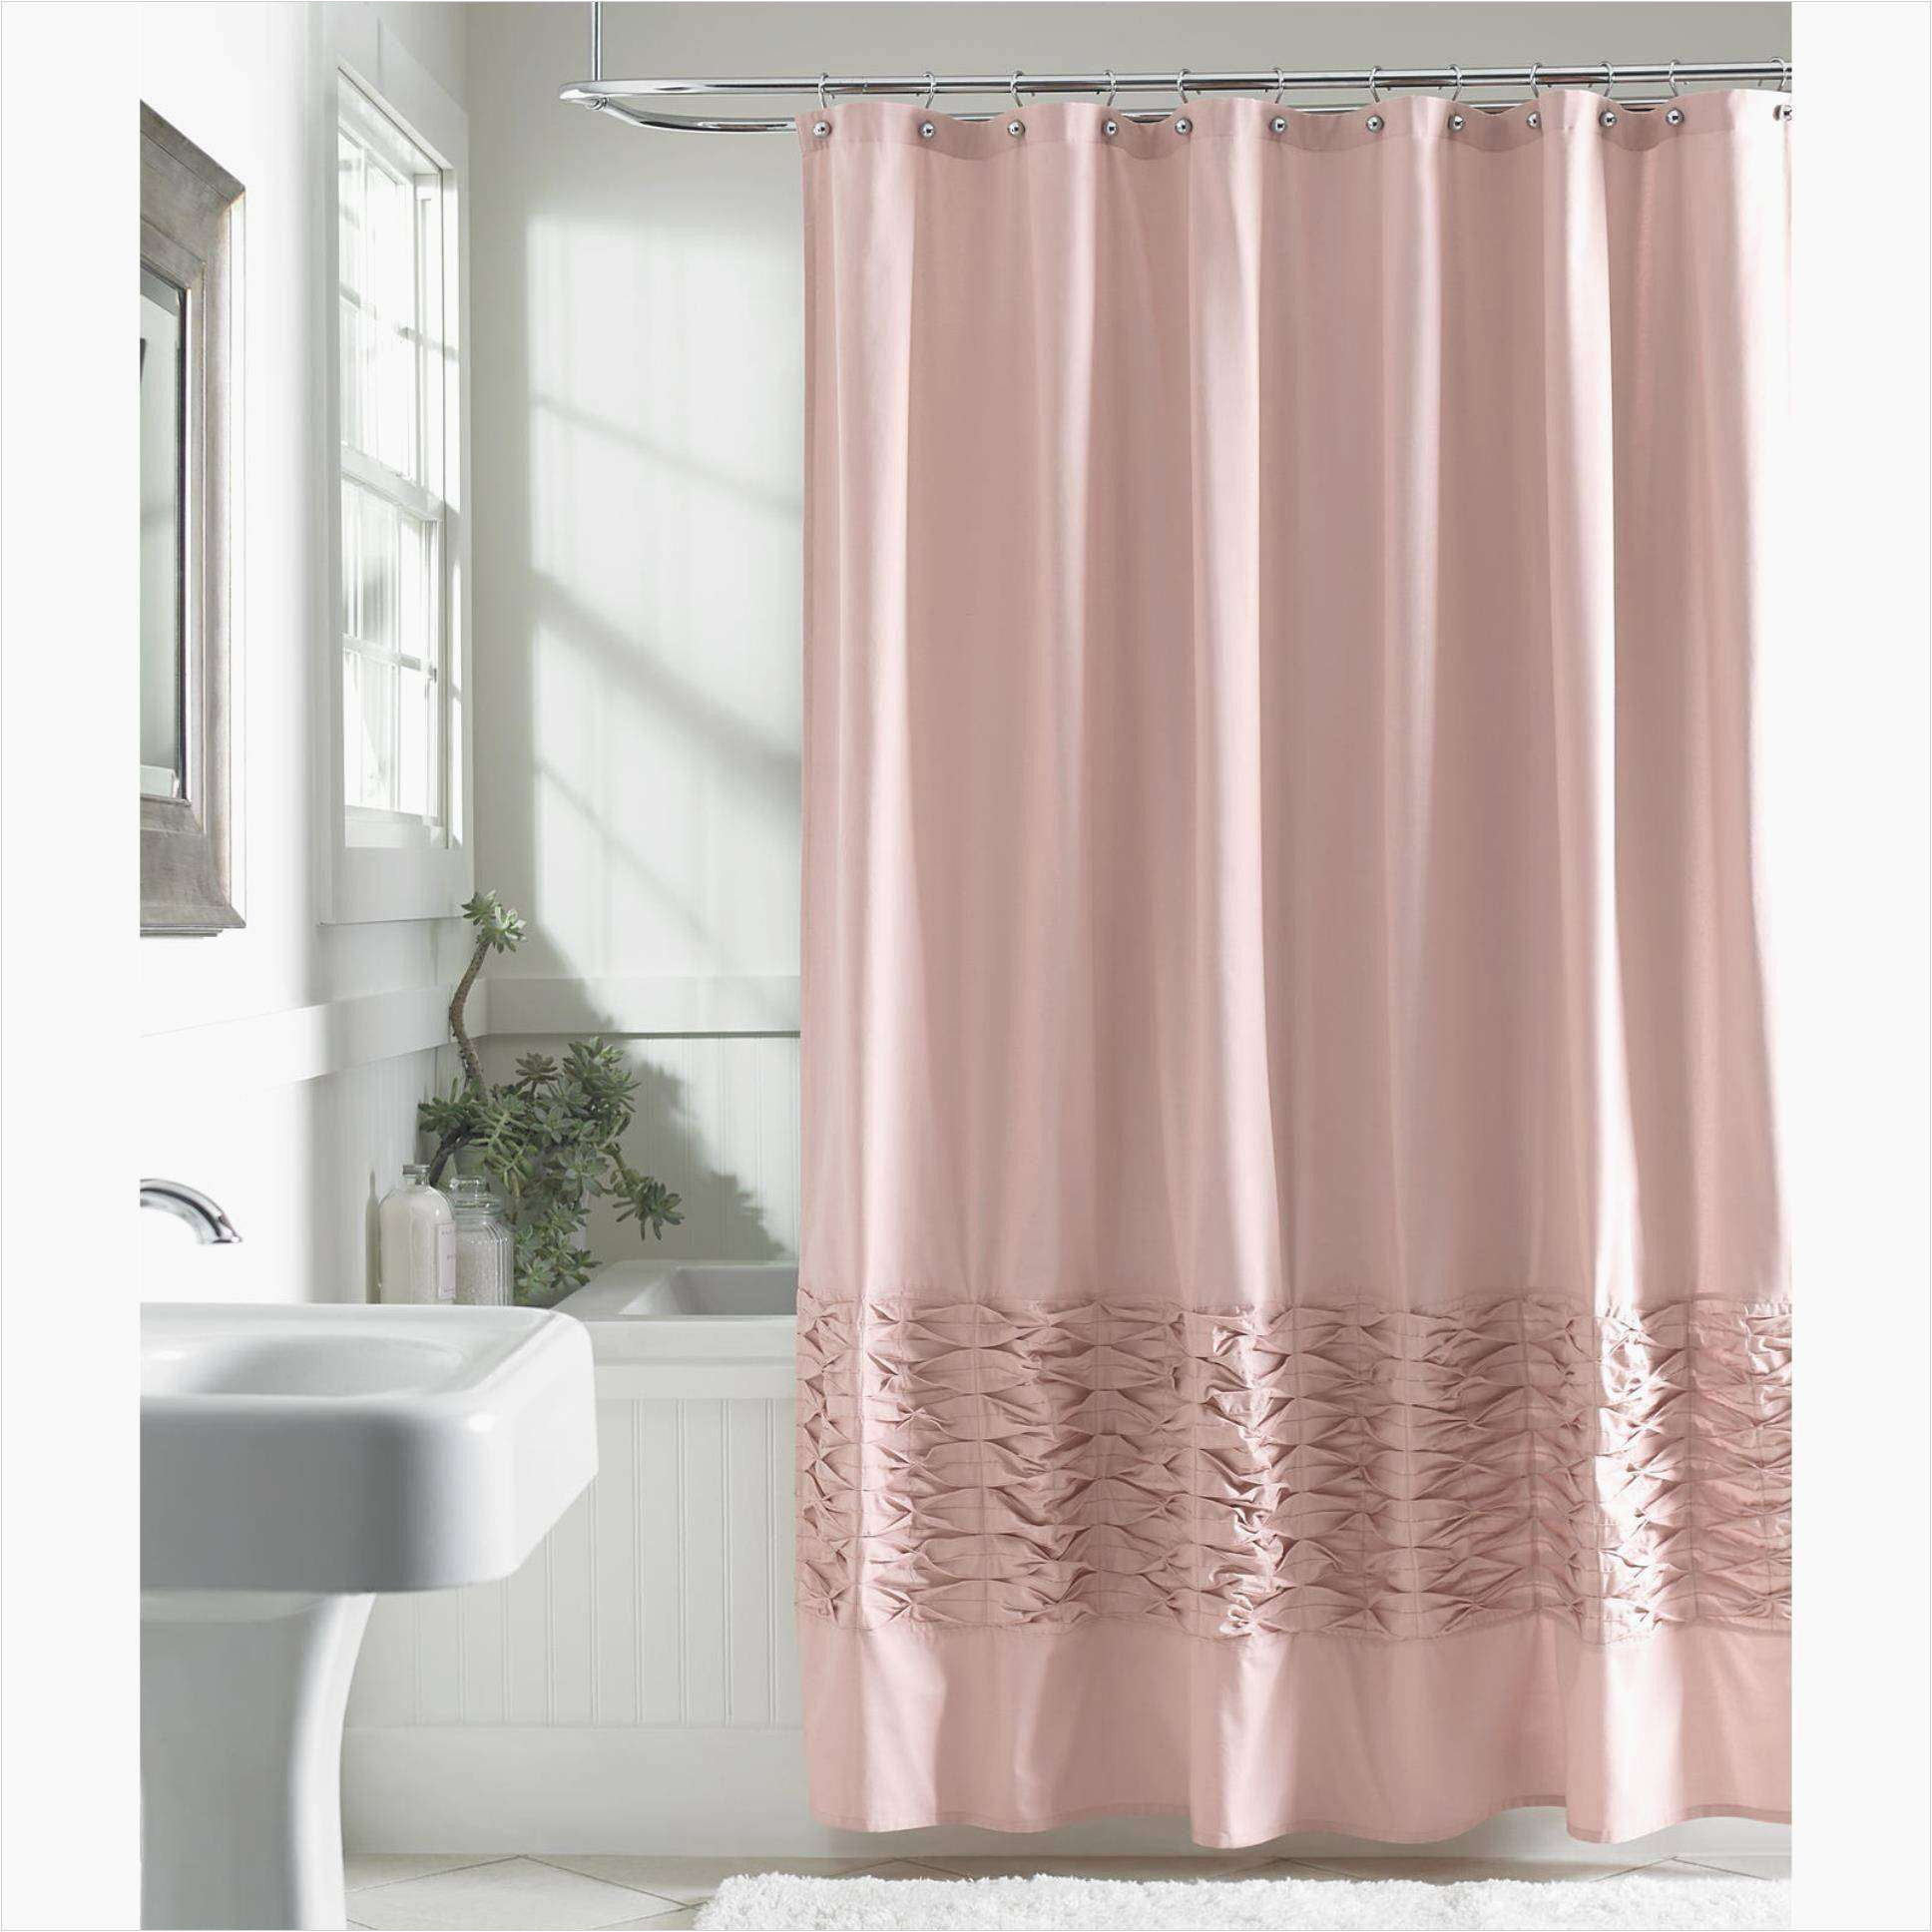 Lowes Curtains and Drapes A Blackout Curtains Lowes 37 Fresh Grey Curtain Panels the 61938